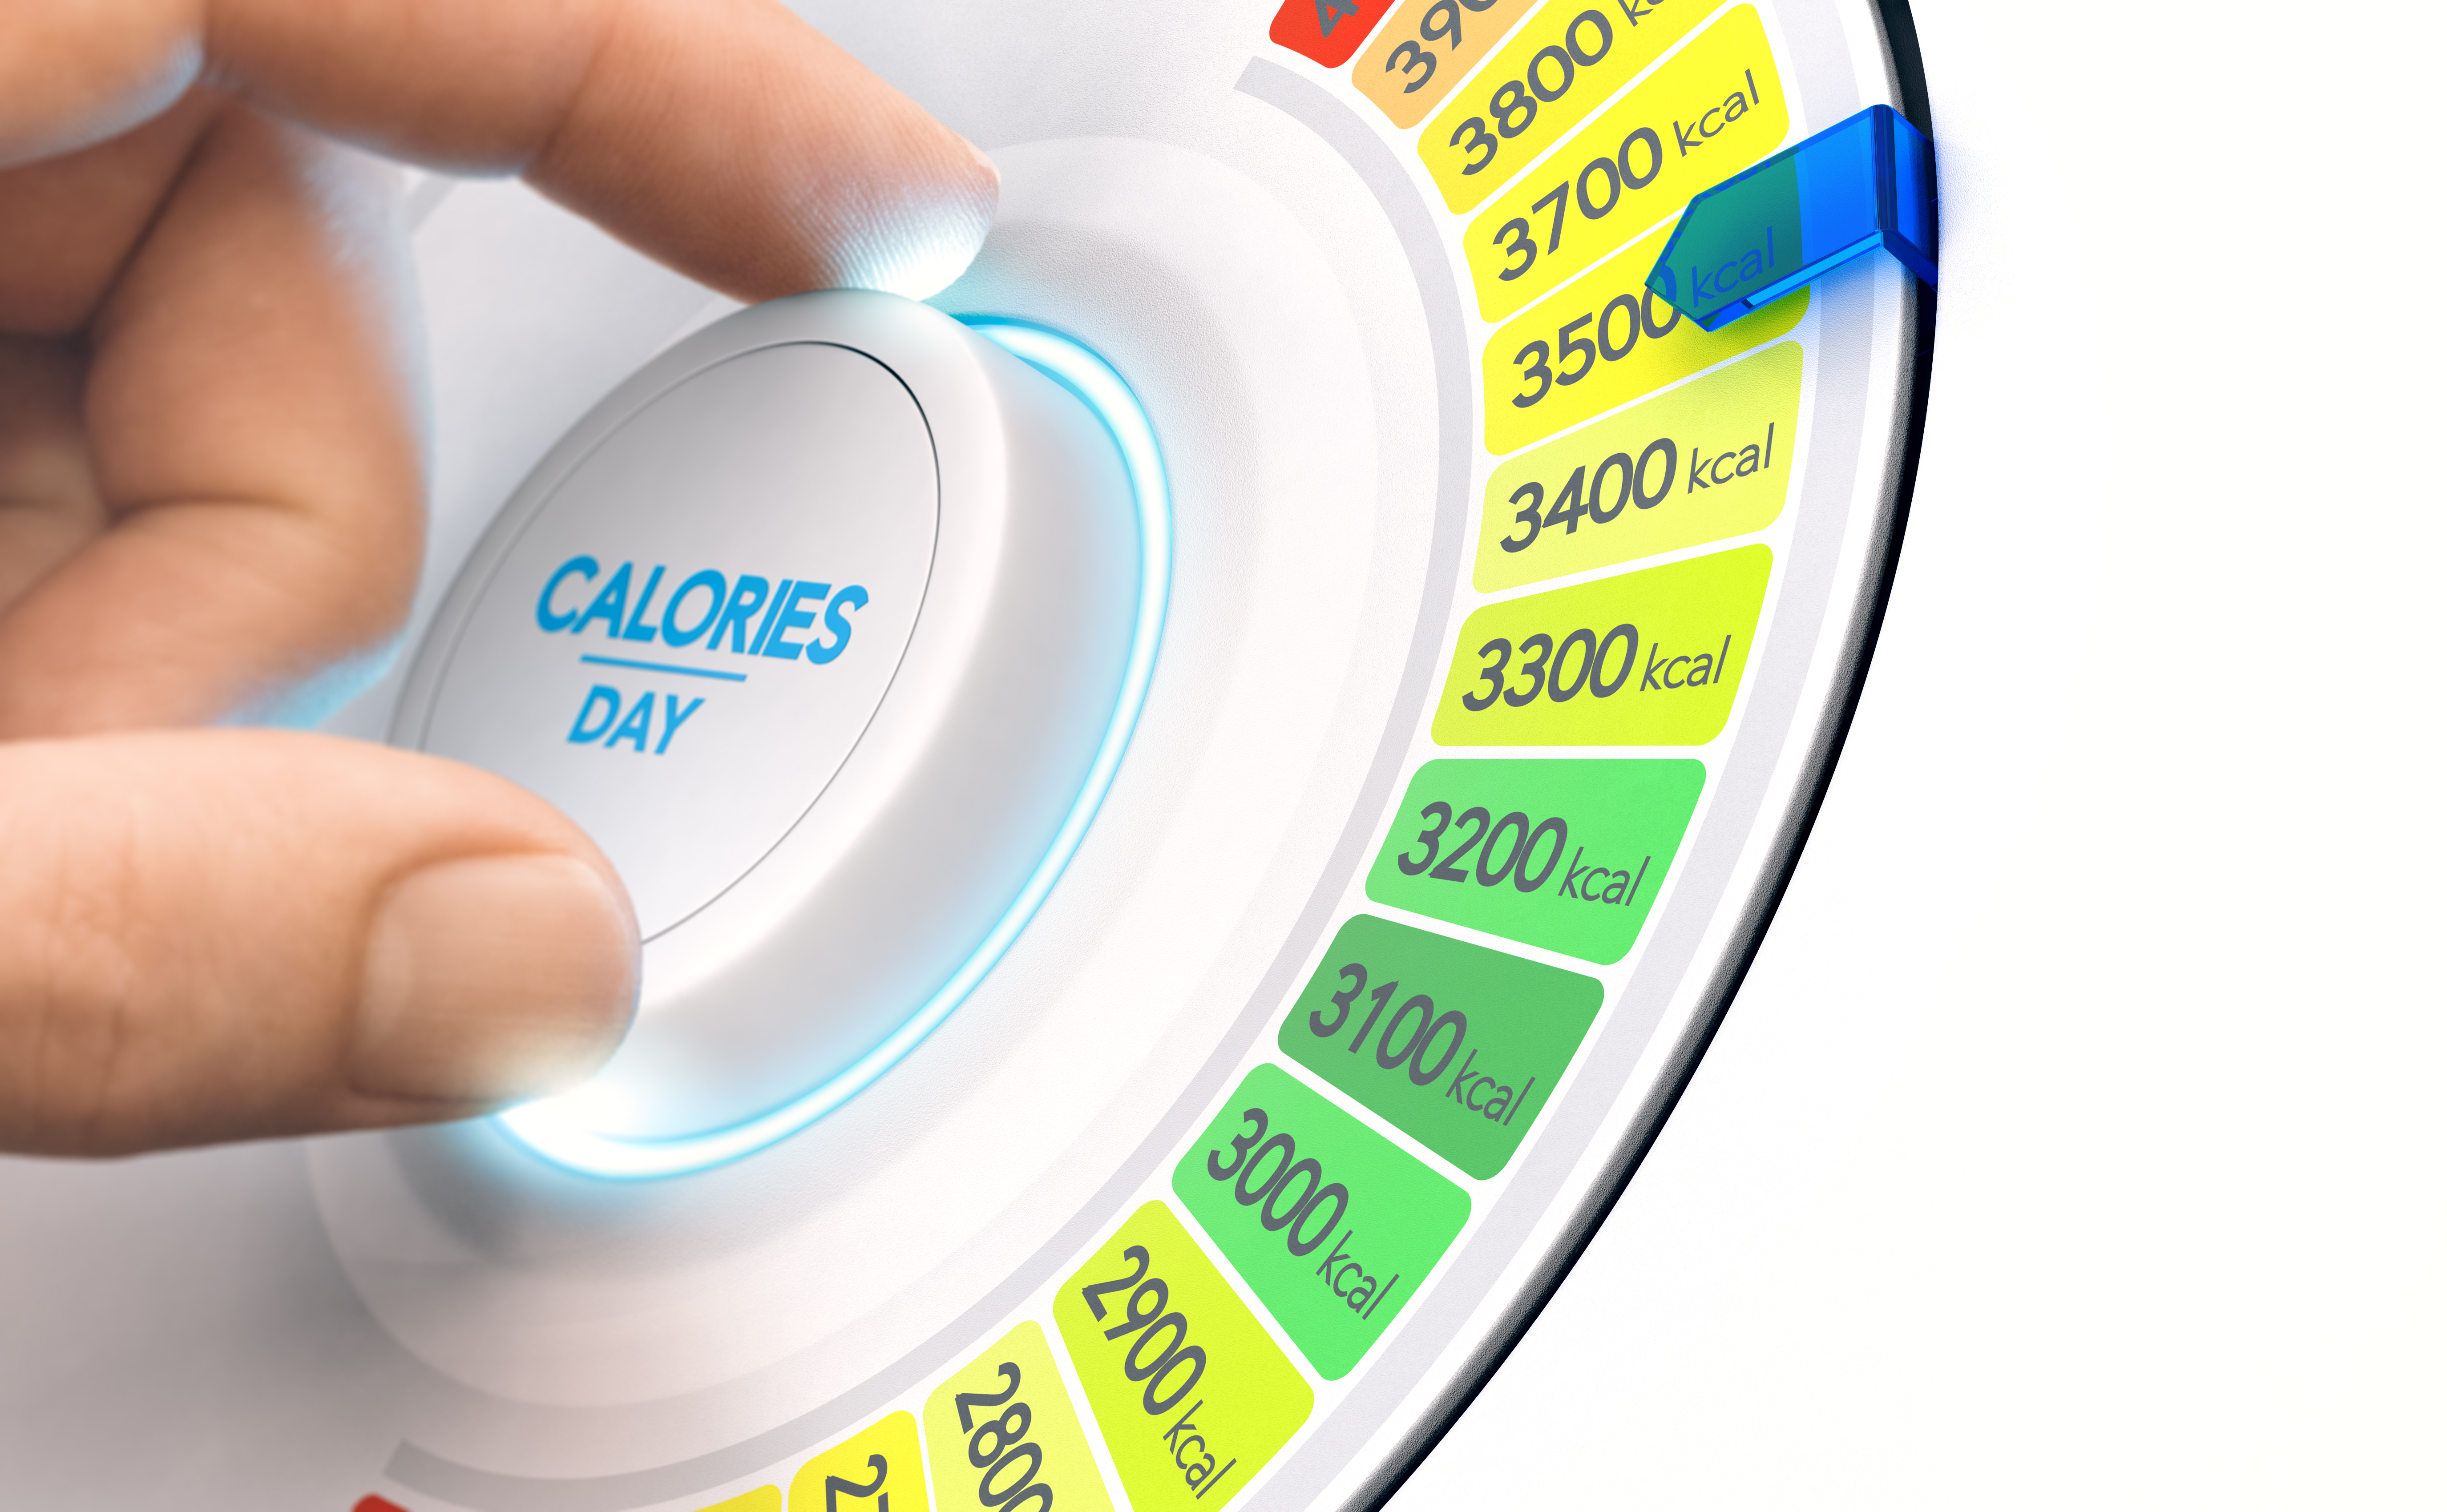 How to increase calories?